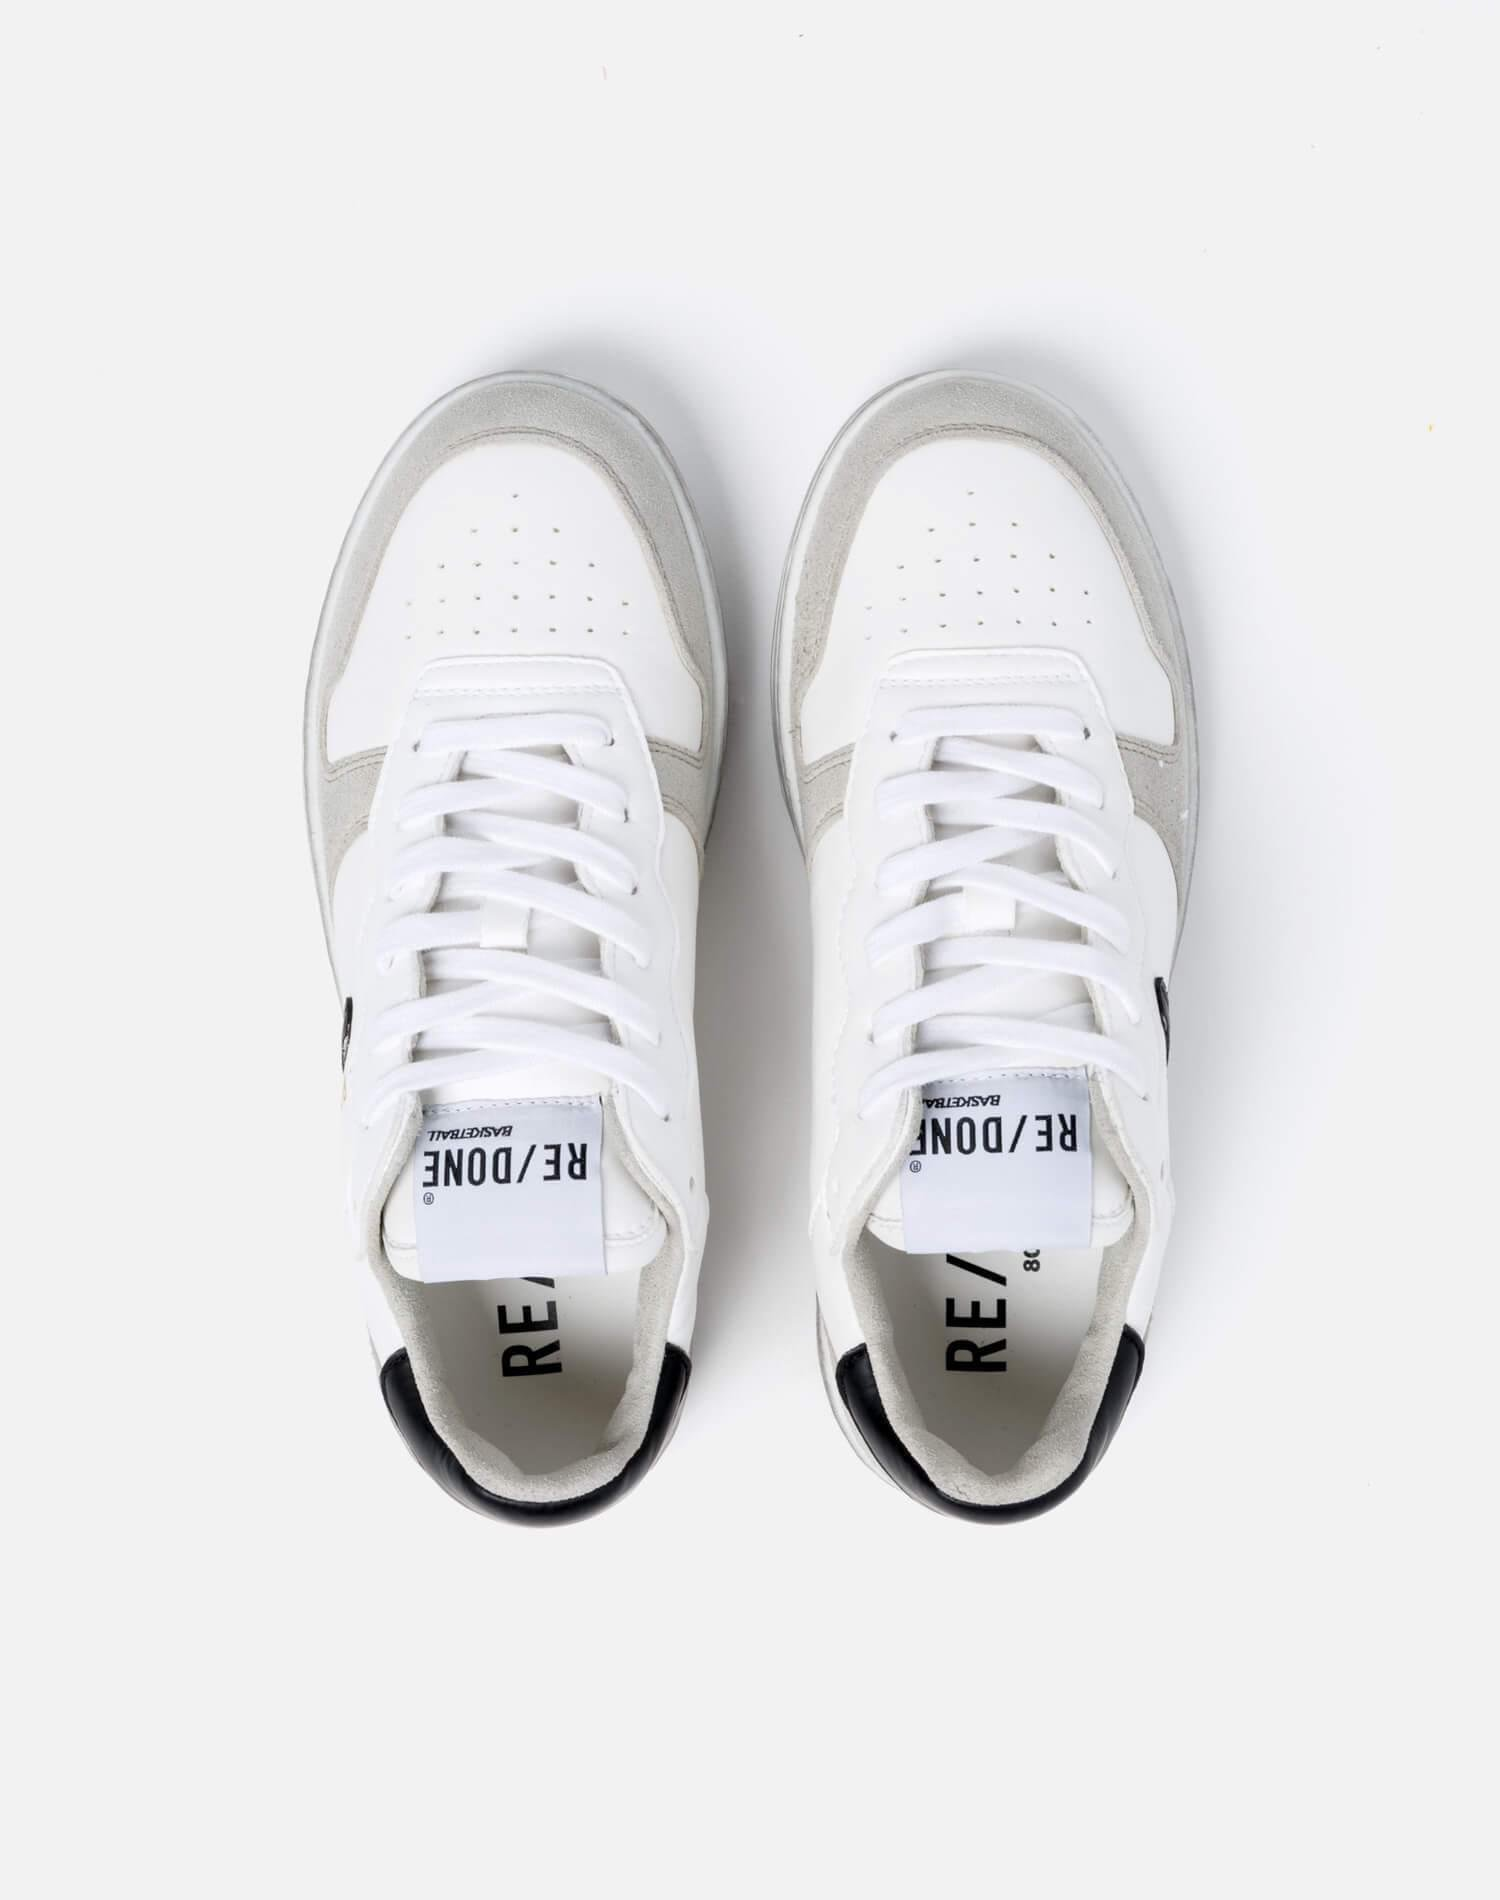 80s Sustainable Basketball Shoe - White and Black 2